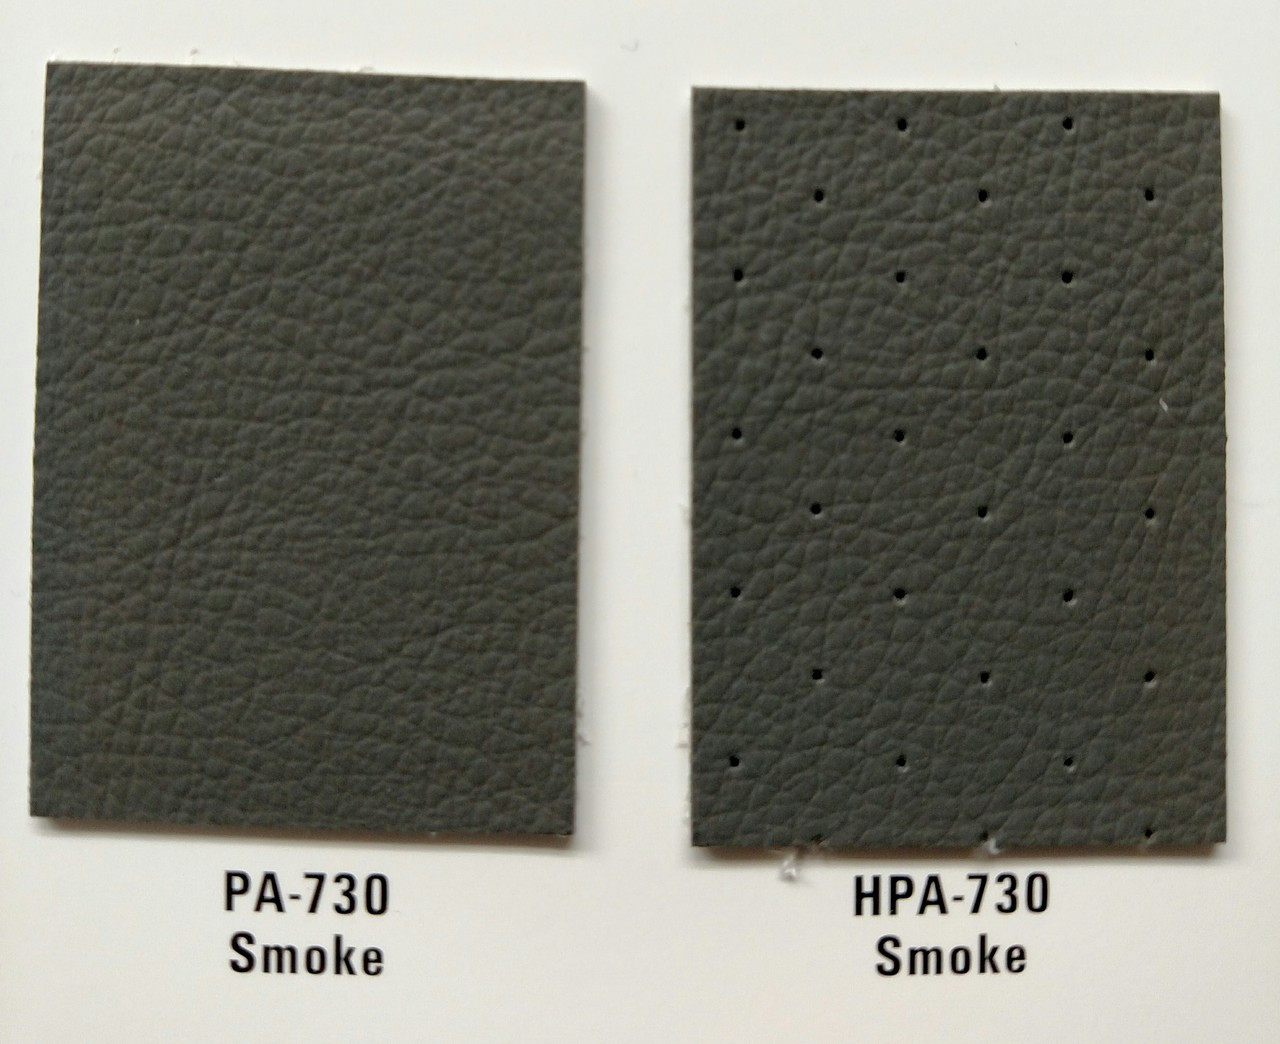 Shown here with HPA 730 Smoke Perf.